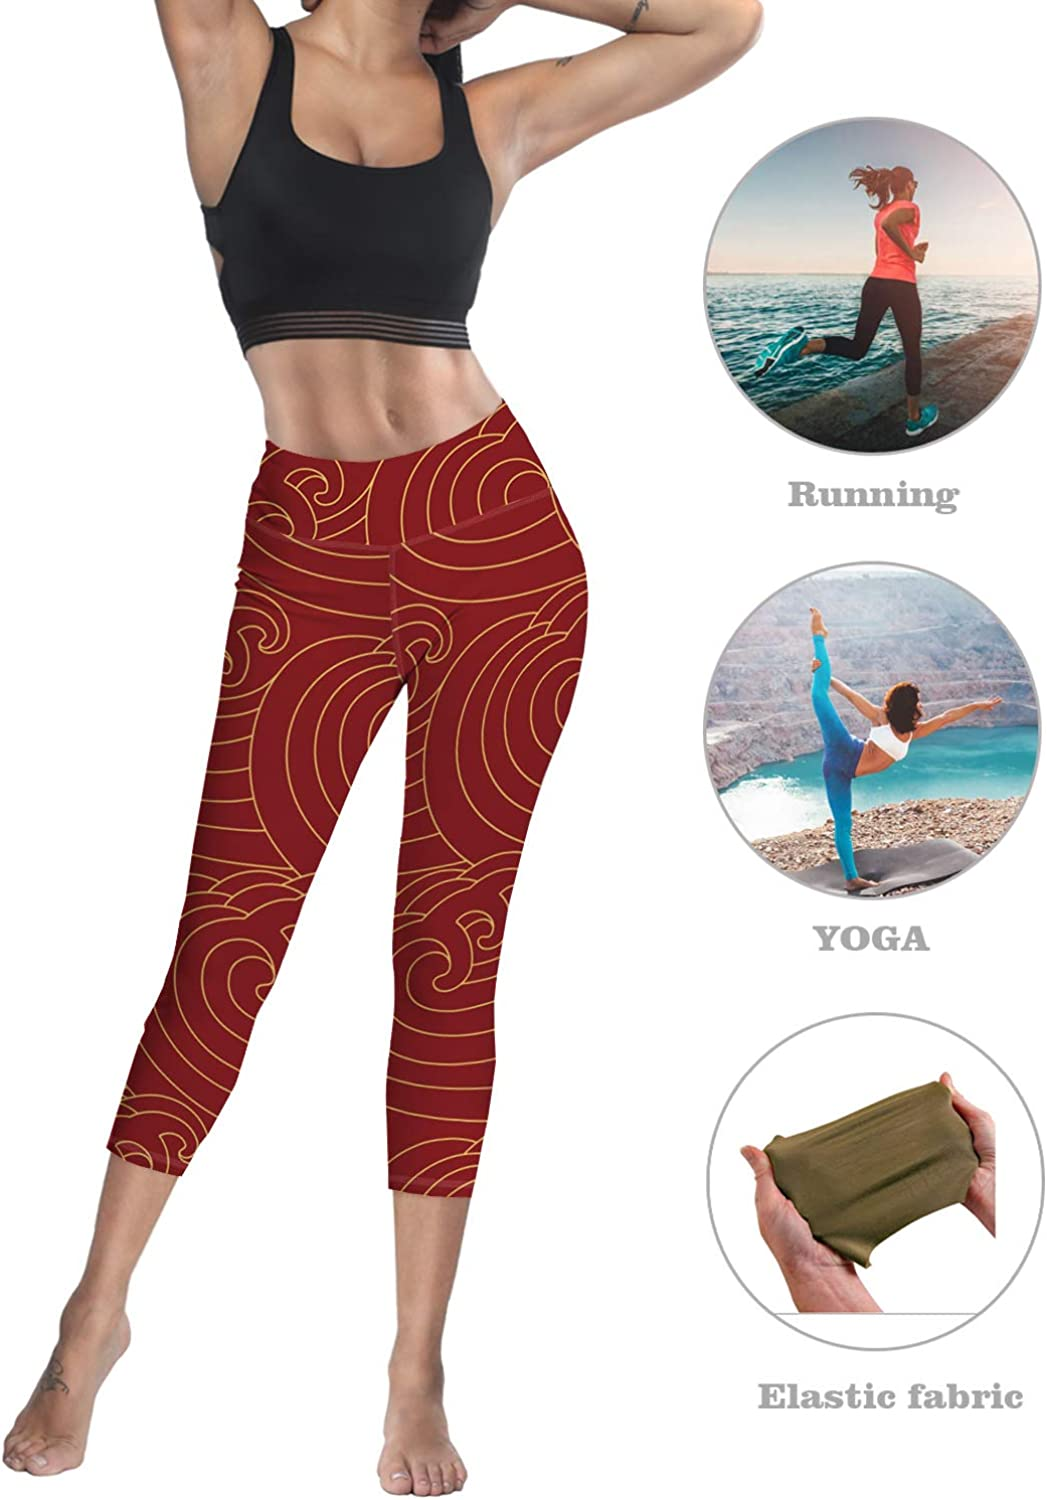 Printed Leggings for Women Ancient Wood Material 3//4 High Waist Yoga Pants Sport Gym Leggings Workout